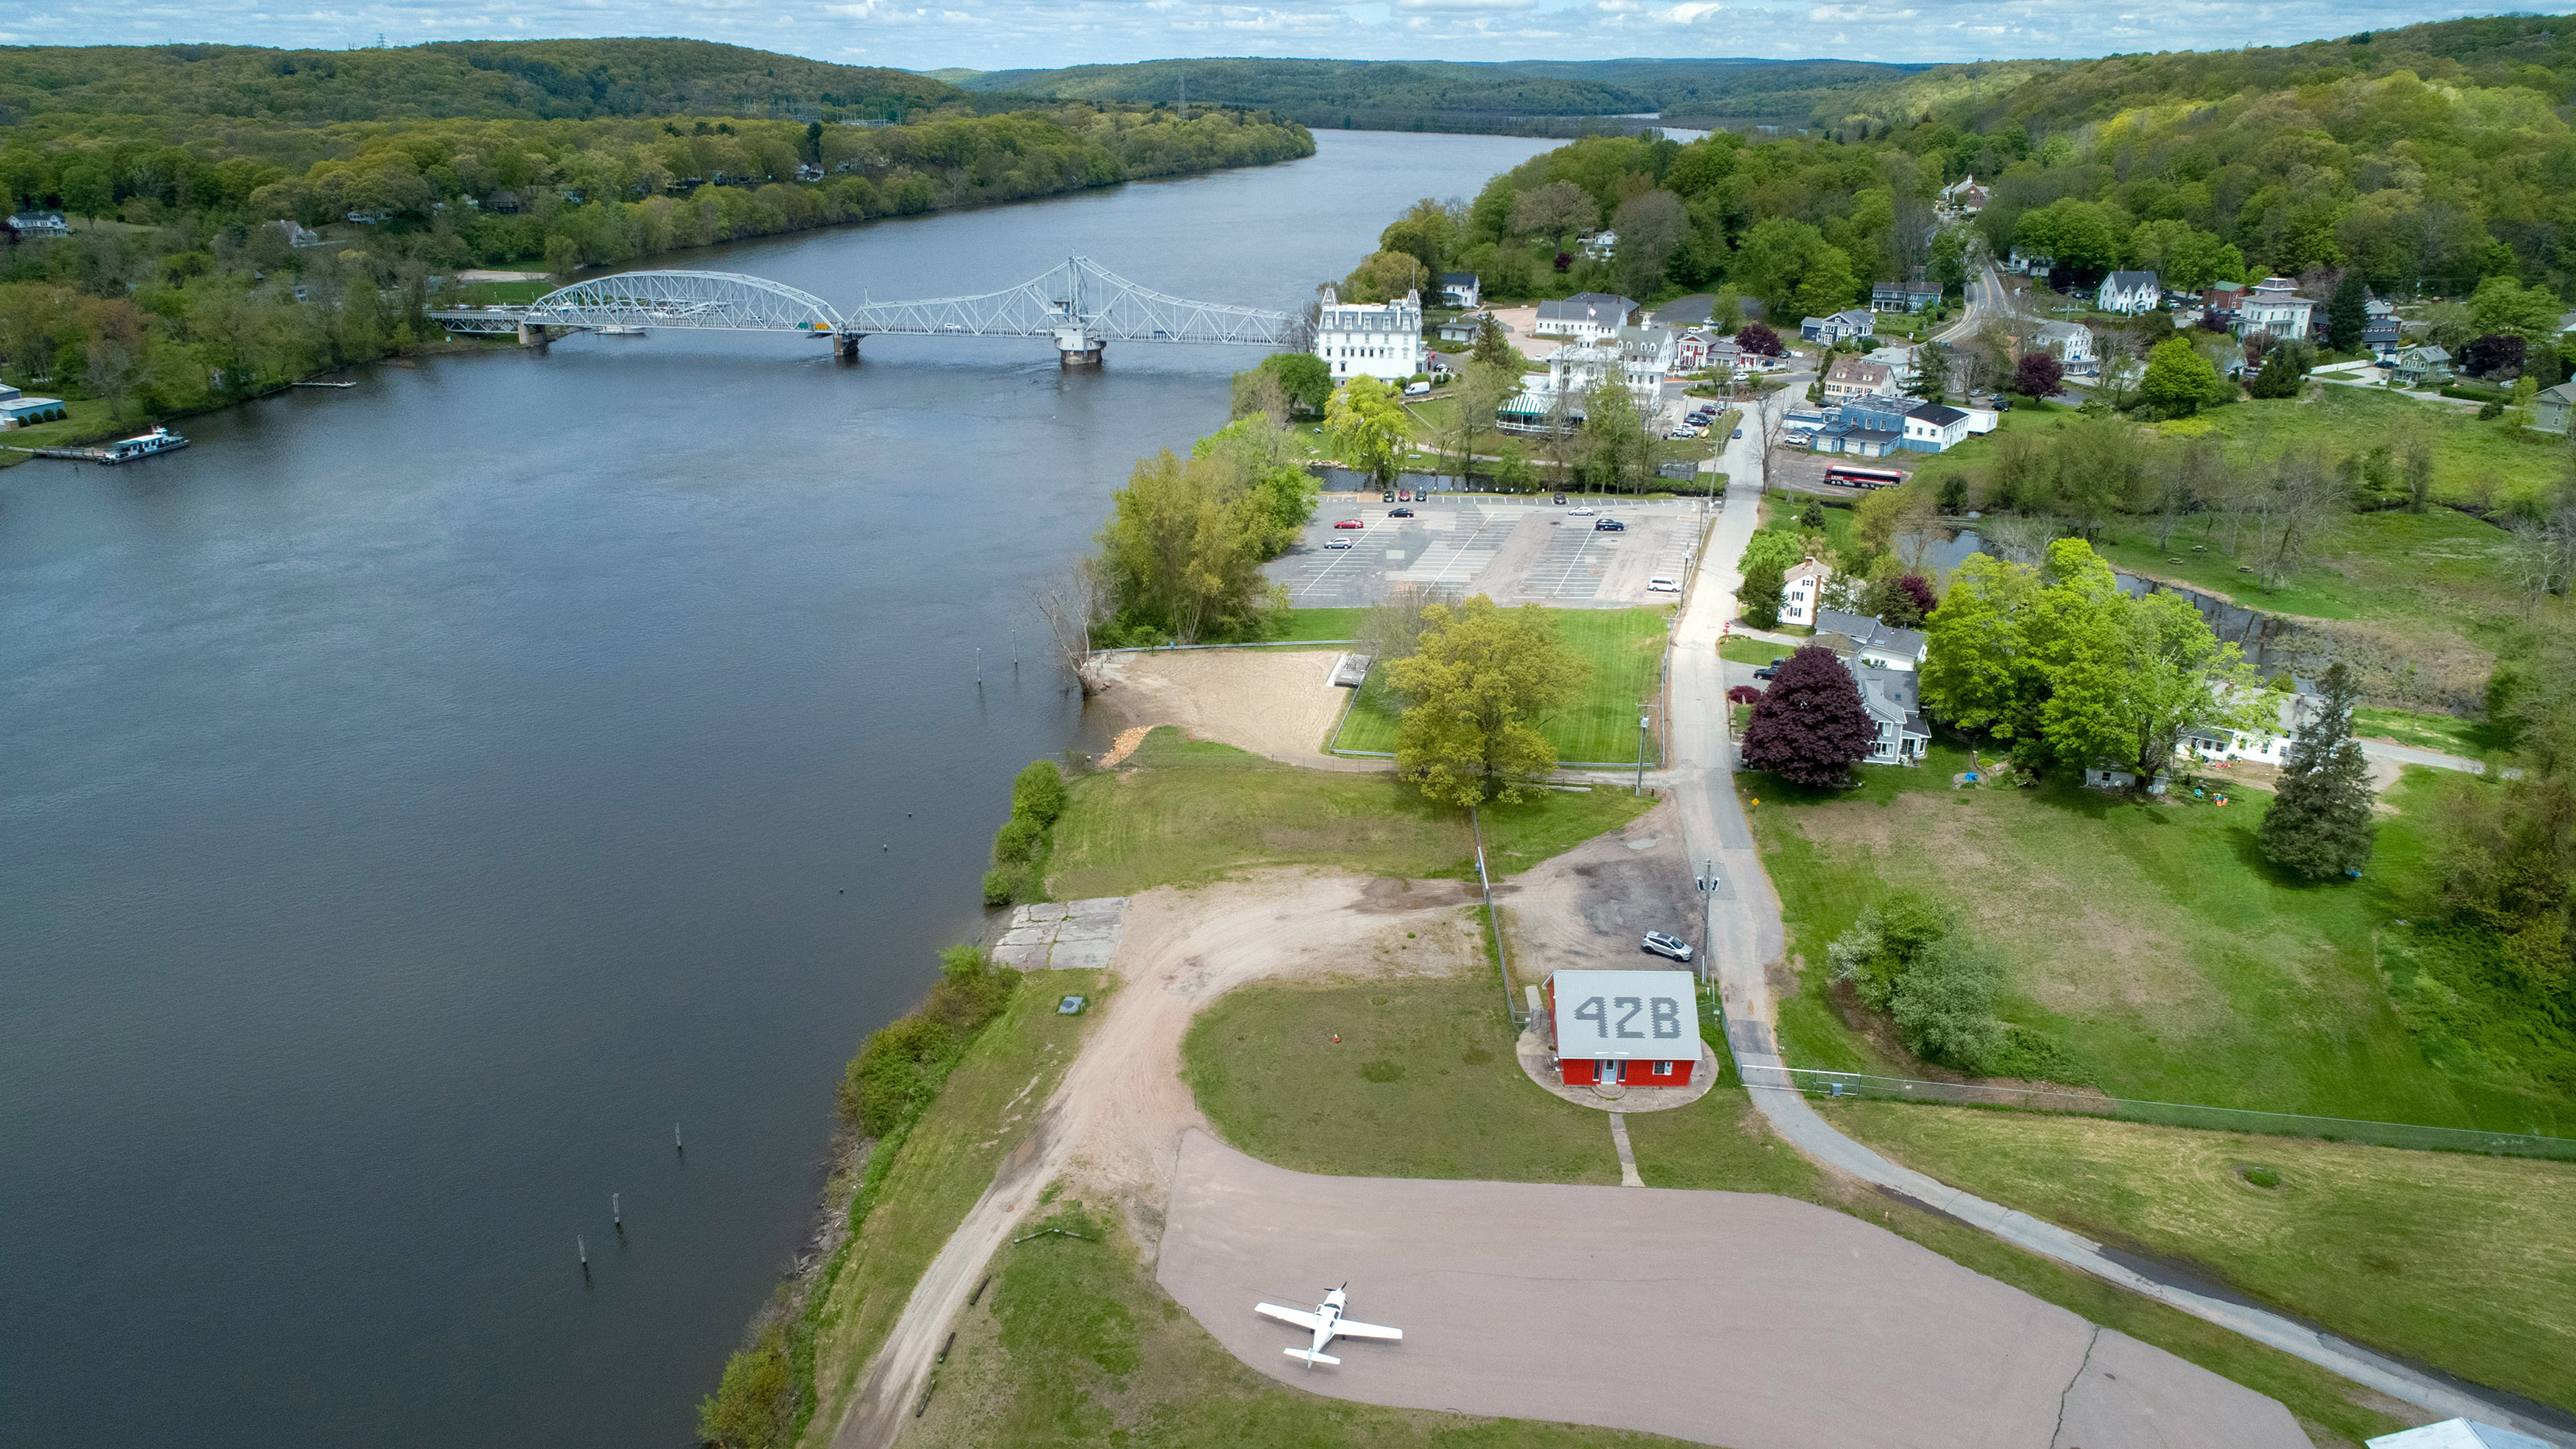 The Goodspeed Opera House is an excellent regional theater nestled beside the East Haddam Bridge on the Connecticut River. Goodspeed Airport (42B) is within walking distance to the south. Photo by Jim Moore.